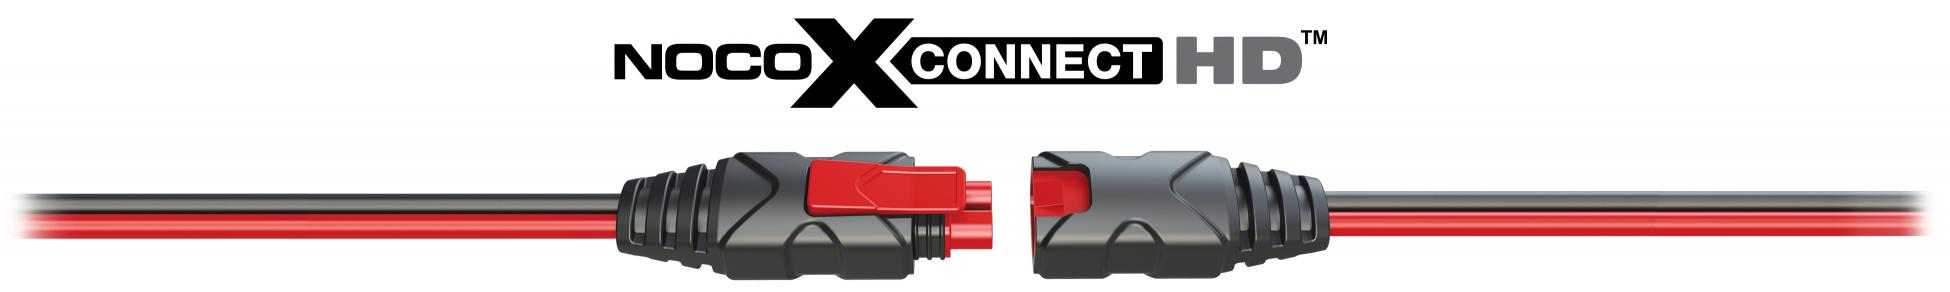 noco-automotive-car-battery-charger-connectors-hd-x-connect-frankies.jpg